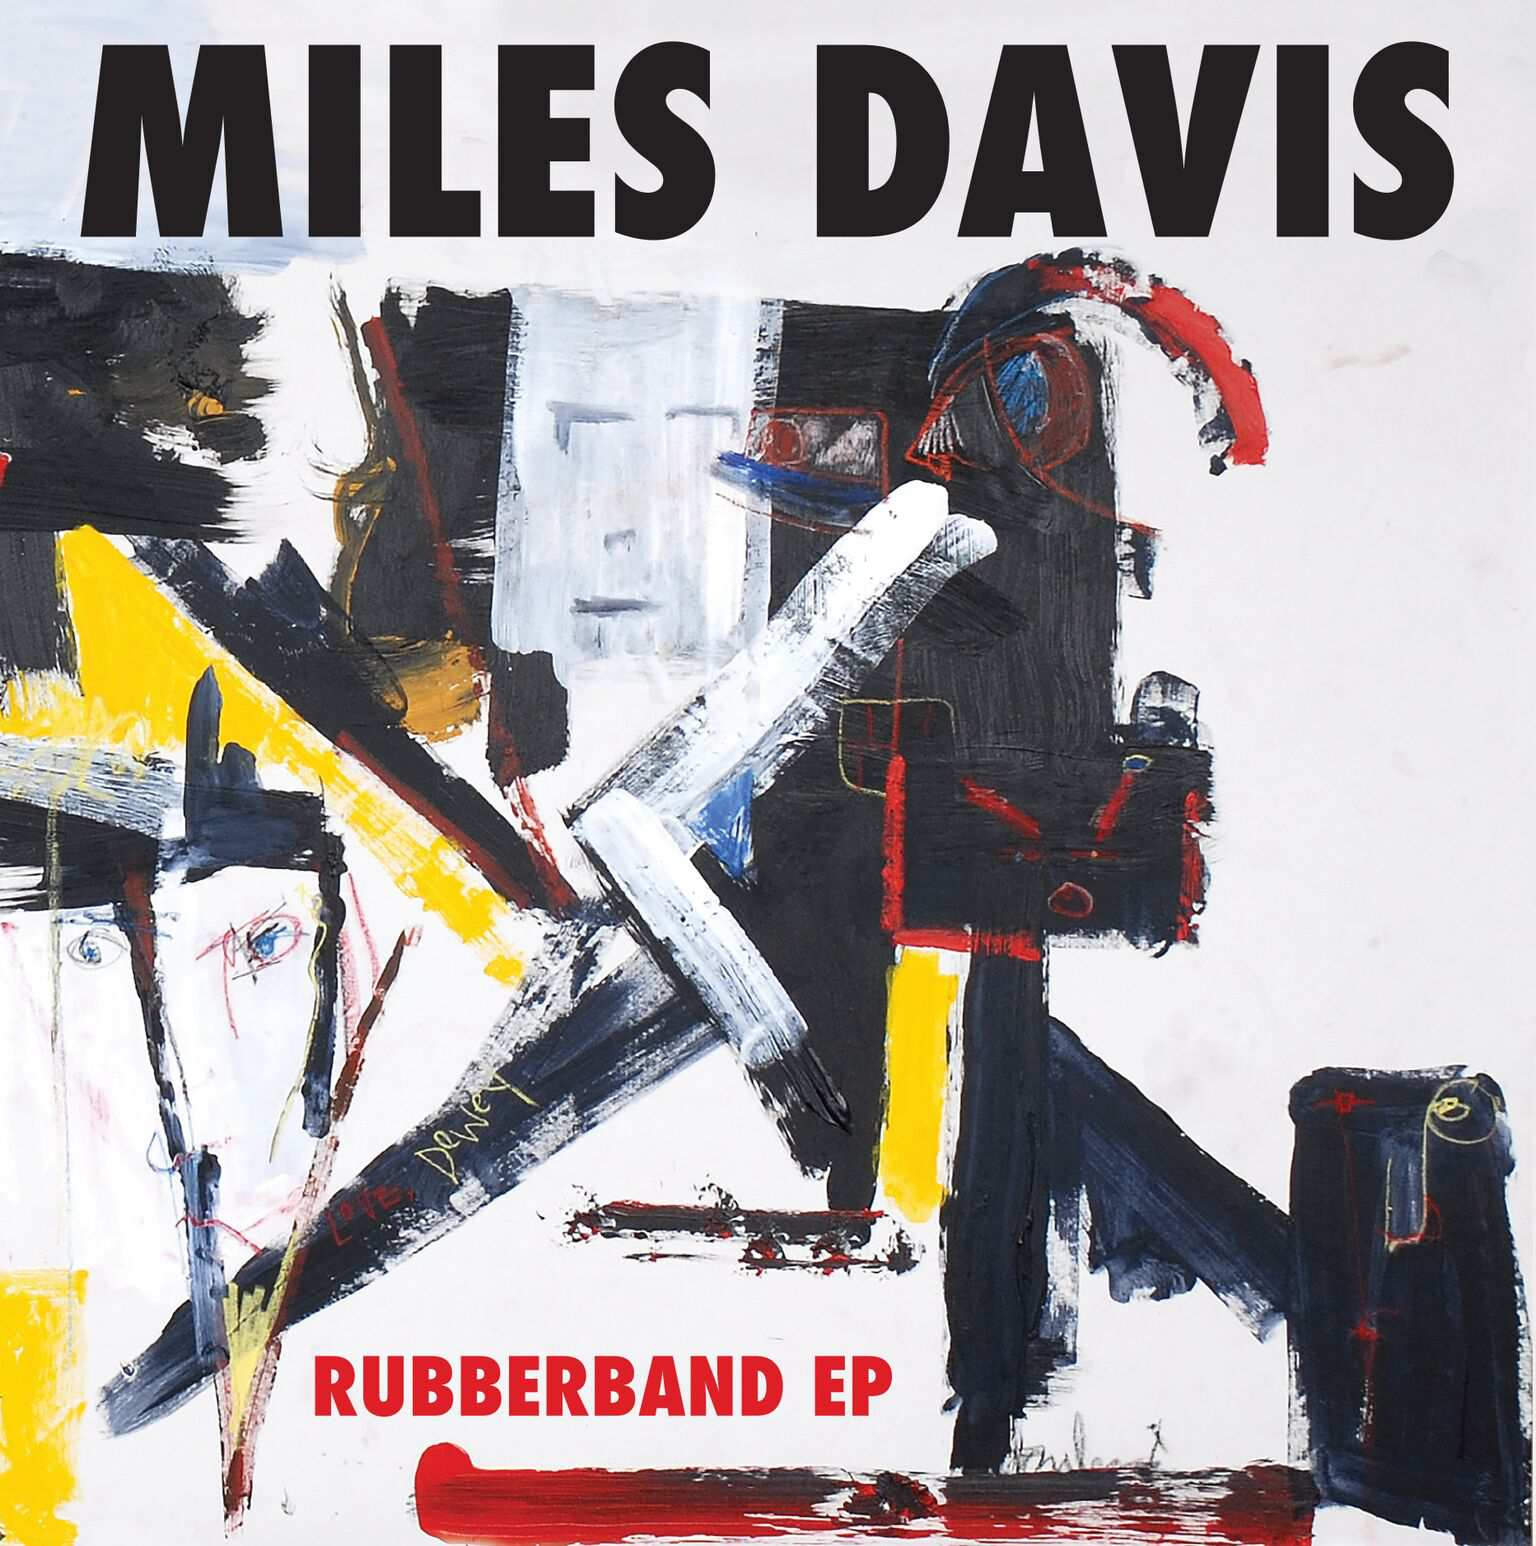 miles davis 39 rubberband 39 ep to be released for record. Black Bedroom Furniture Sets. Home Design Ideas